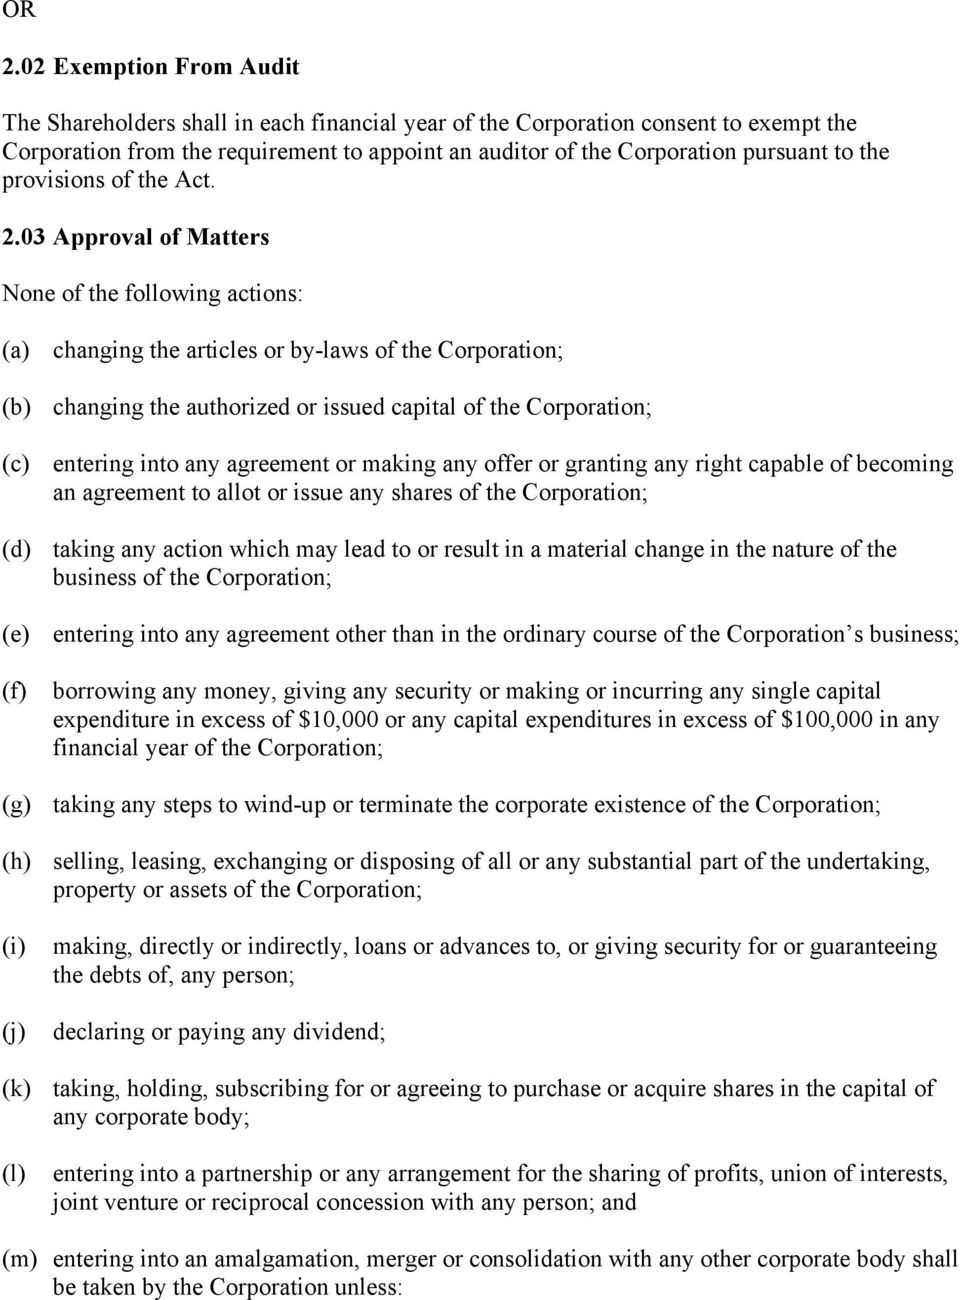 03 Approval of Matters None of the following actions: (a changing the articles or by-laws of the Corporation; (b changing the authorized or issued capital of the Corporation; (c entering into any